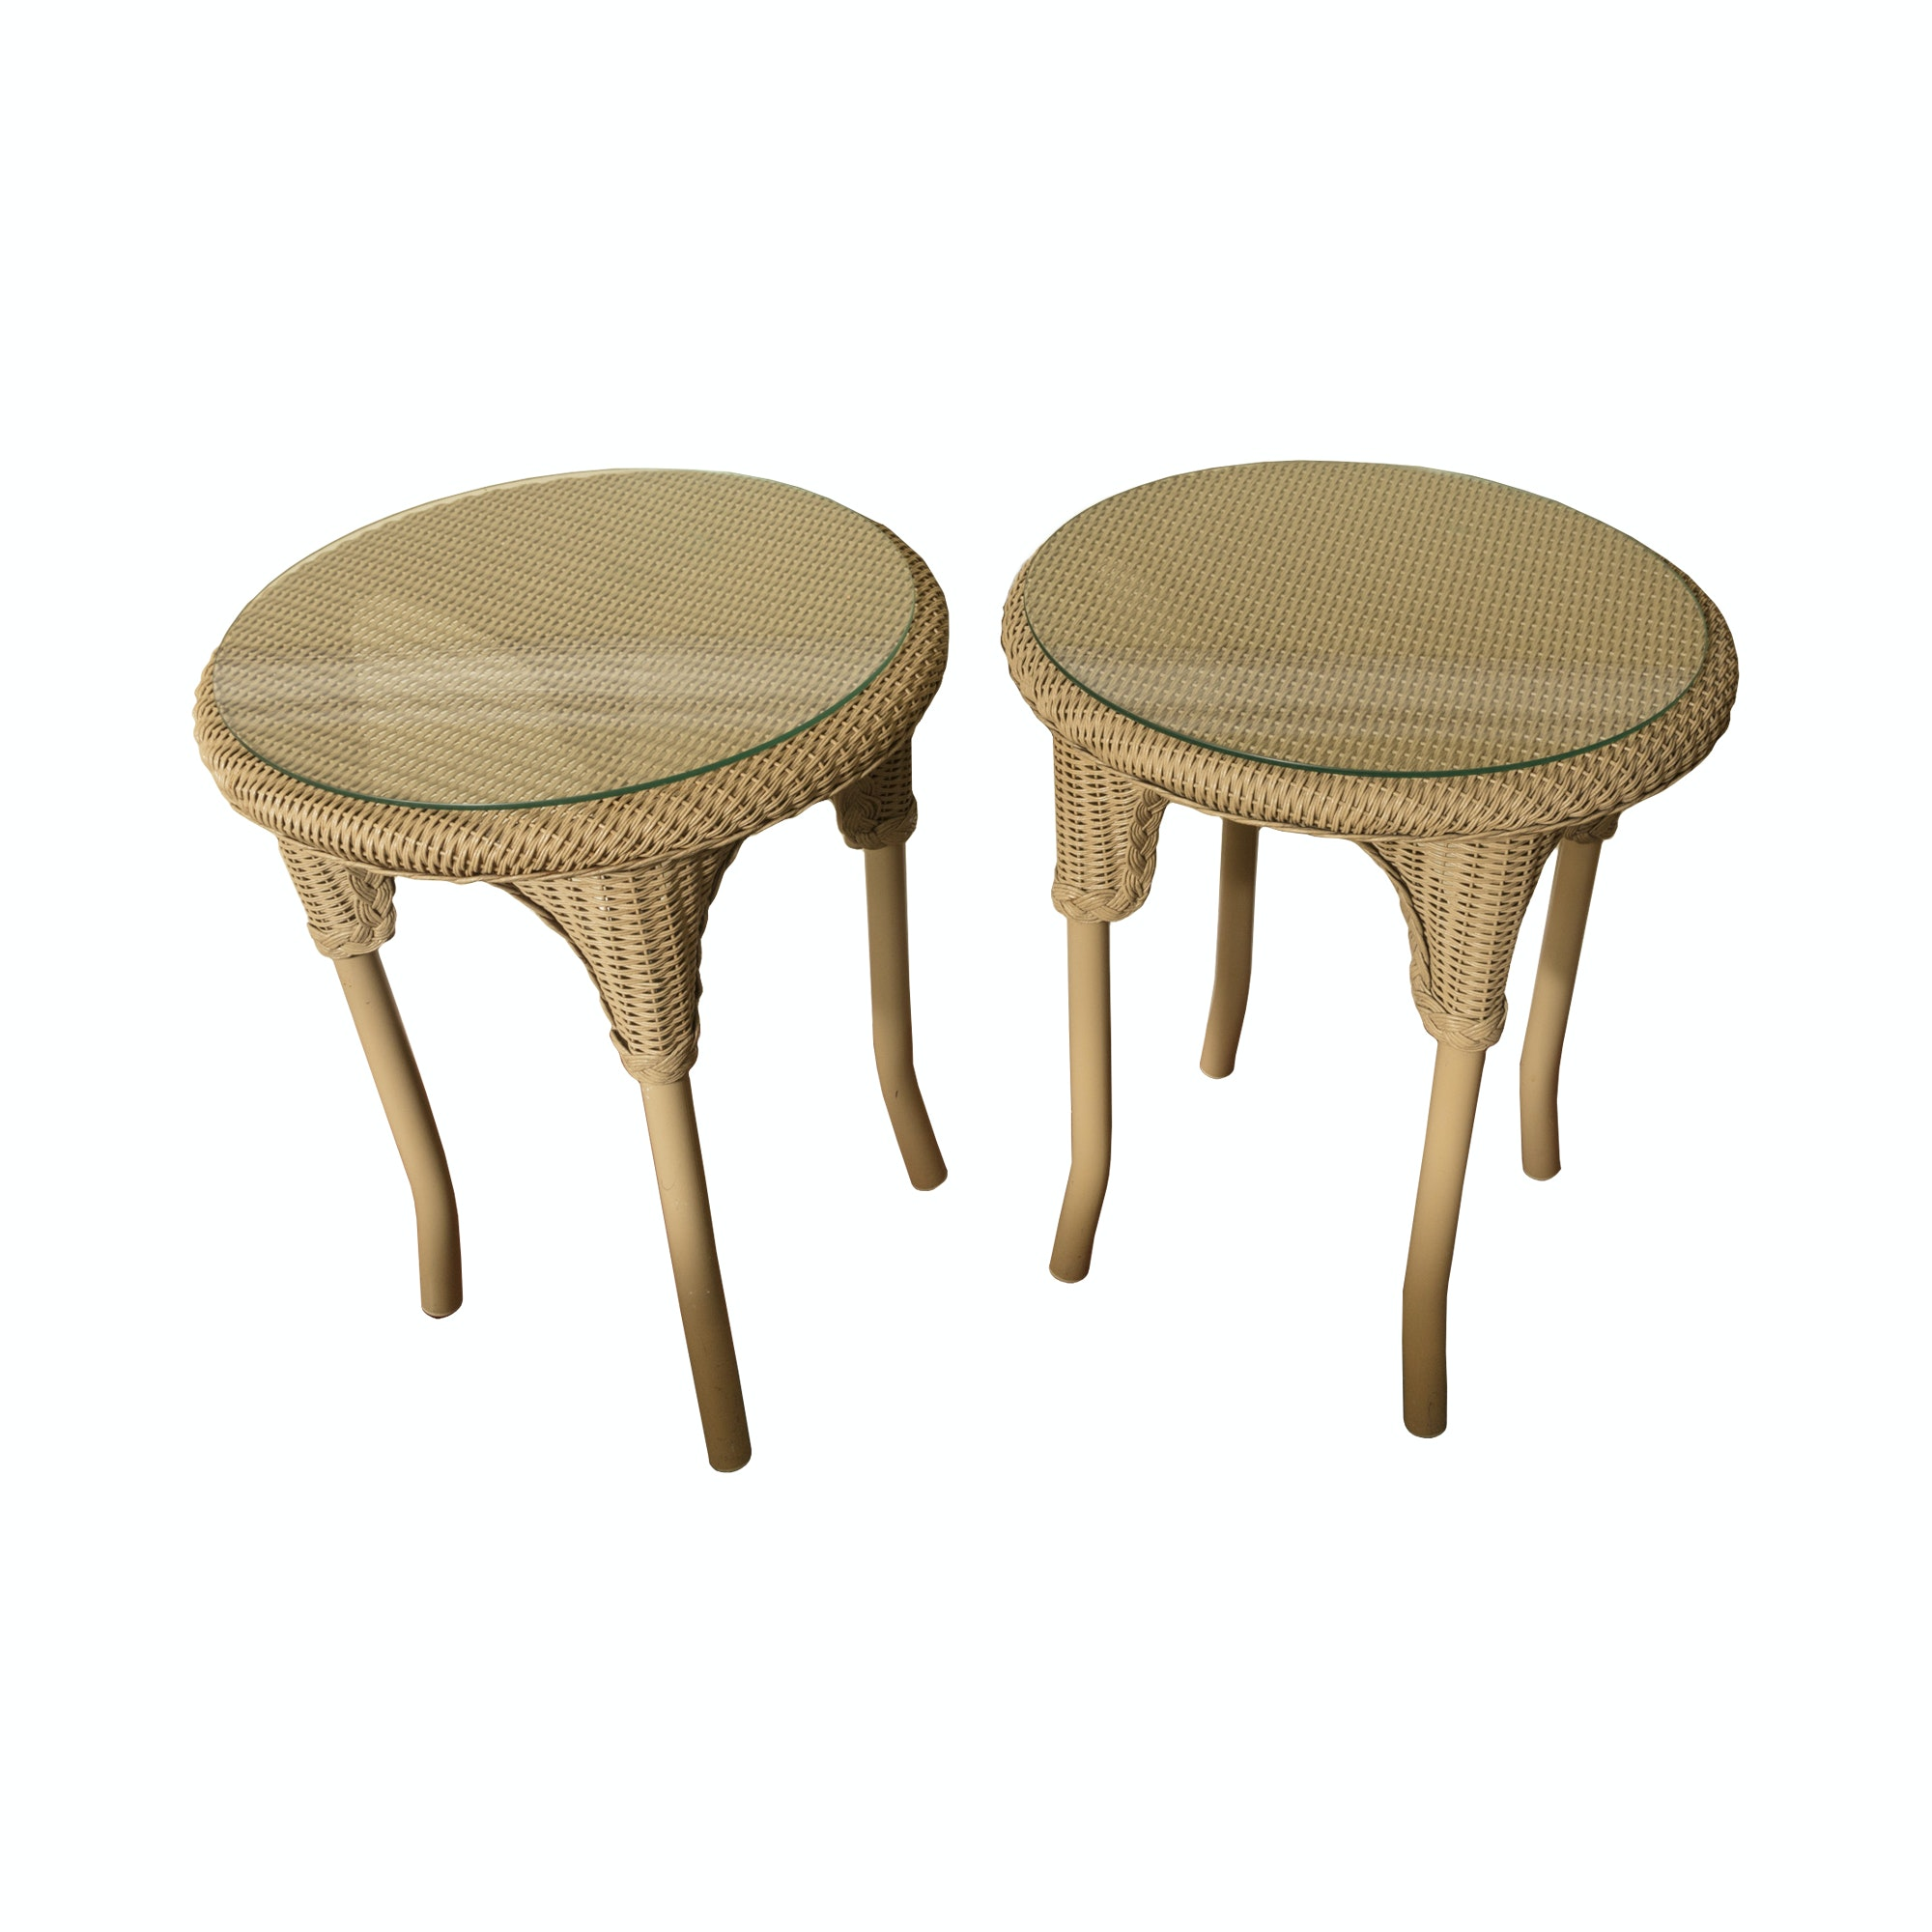 Pair of Wicker End Tables with Glass Tops